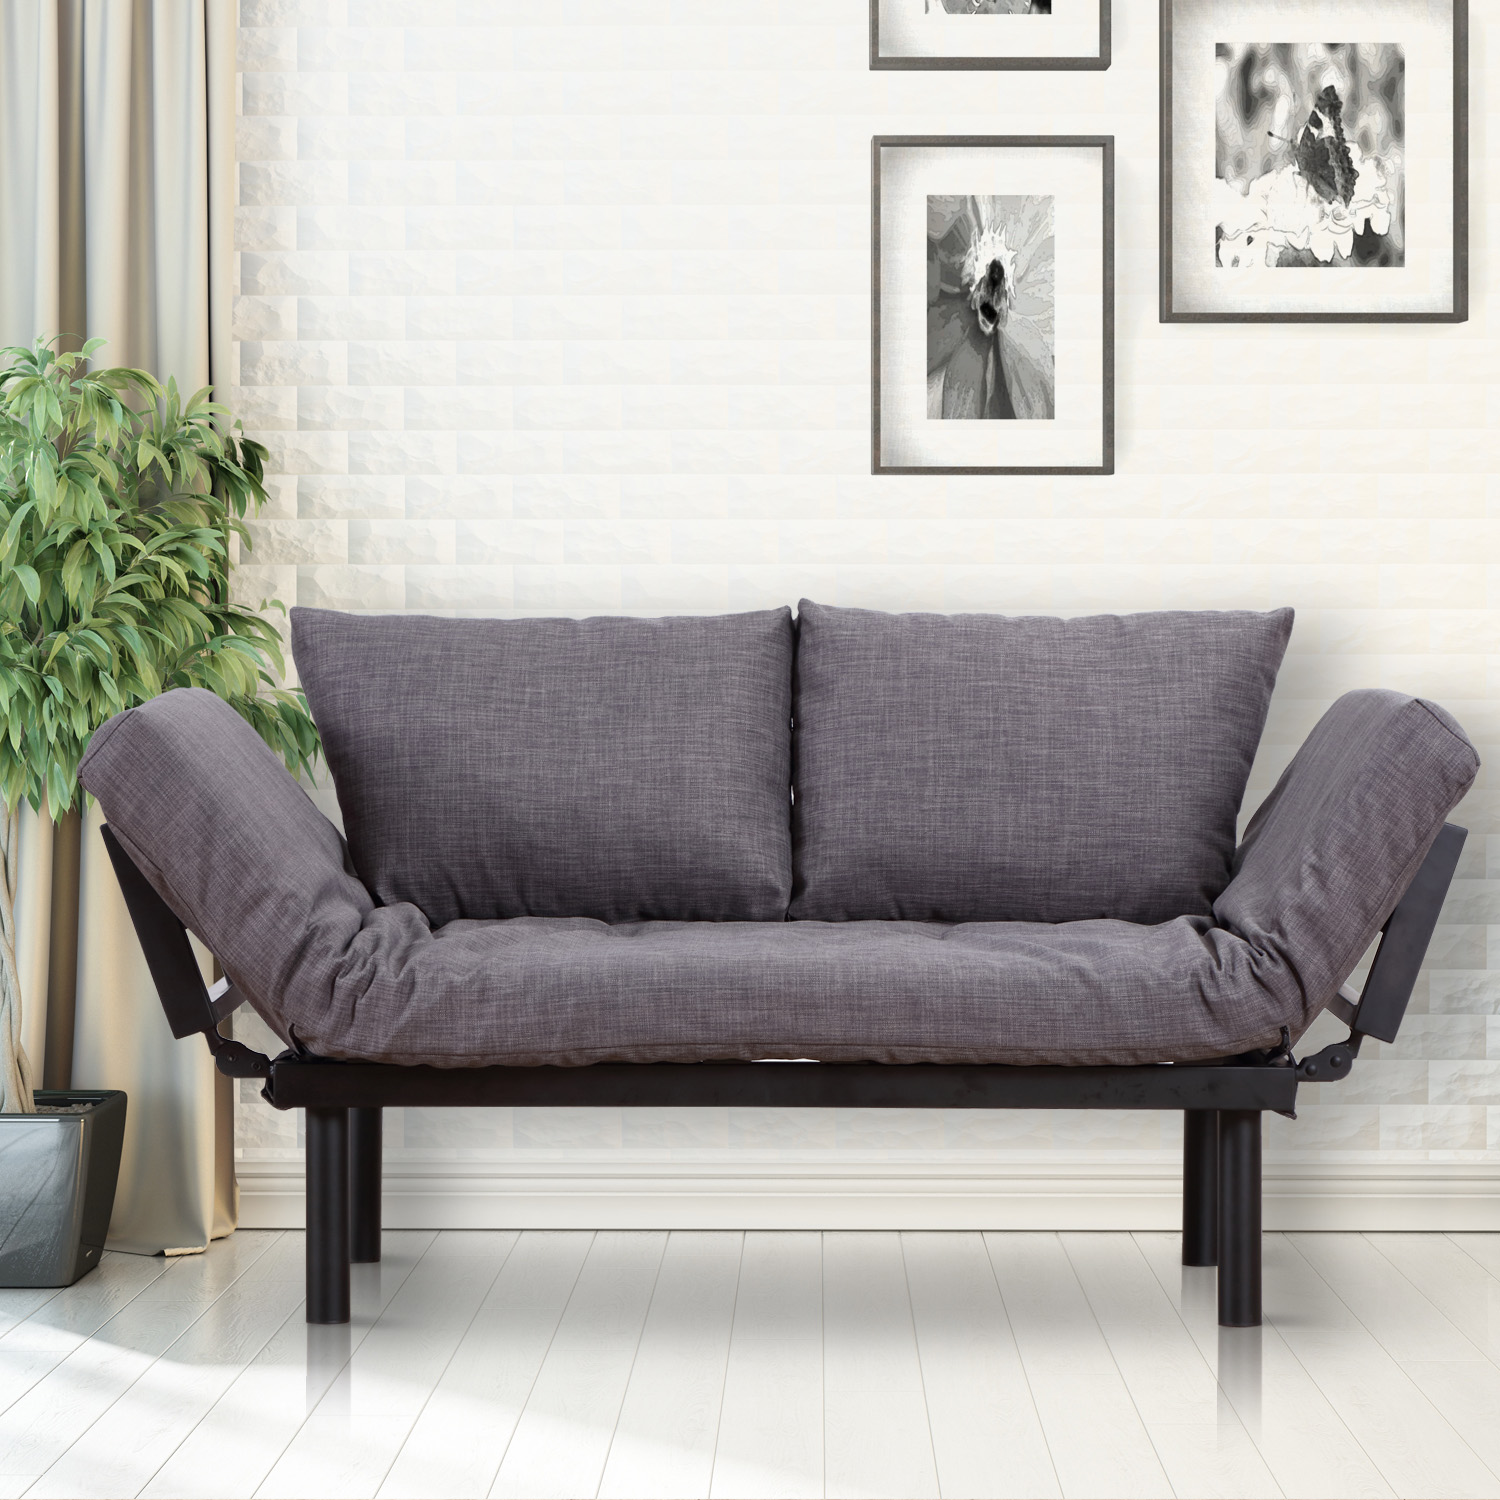 Miraculous Homcom Single Person 3 Position Convertible Couch Chaise Lounger Sofa Bed Black Grey Unemploymentrelief Wooden Chair Designs For Living Room Unemploymentrelieforg